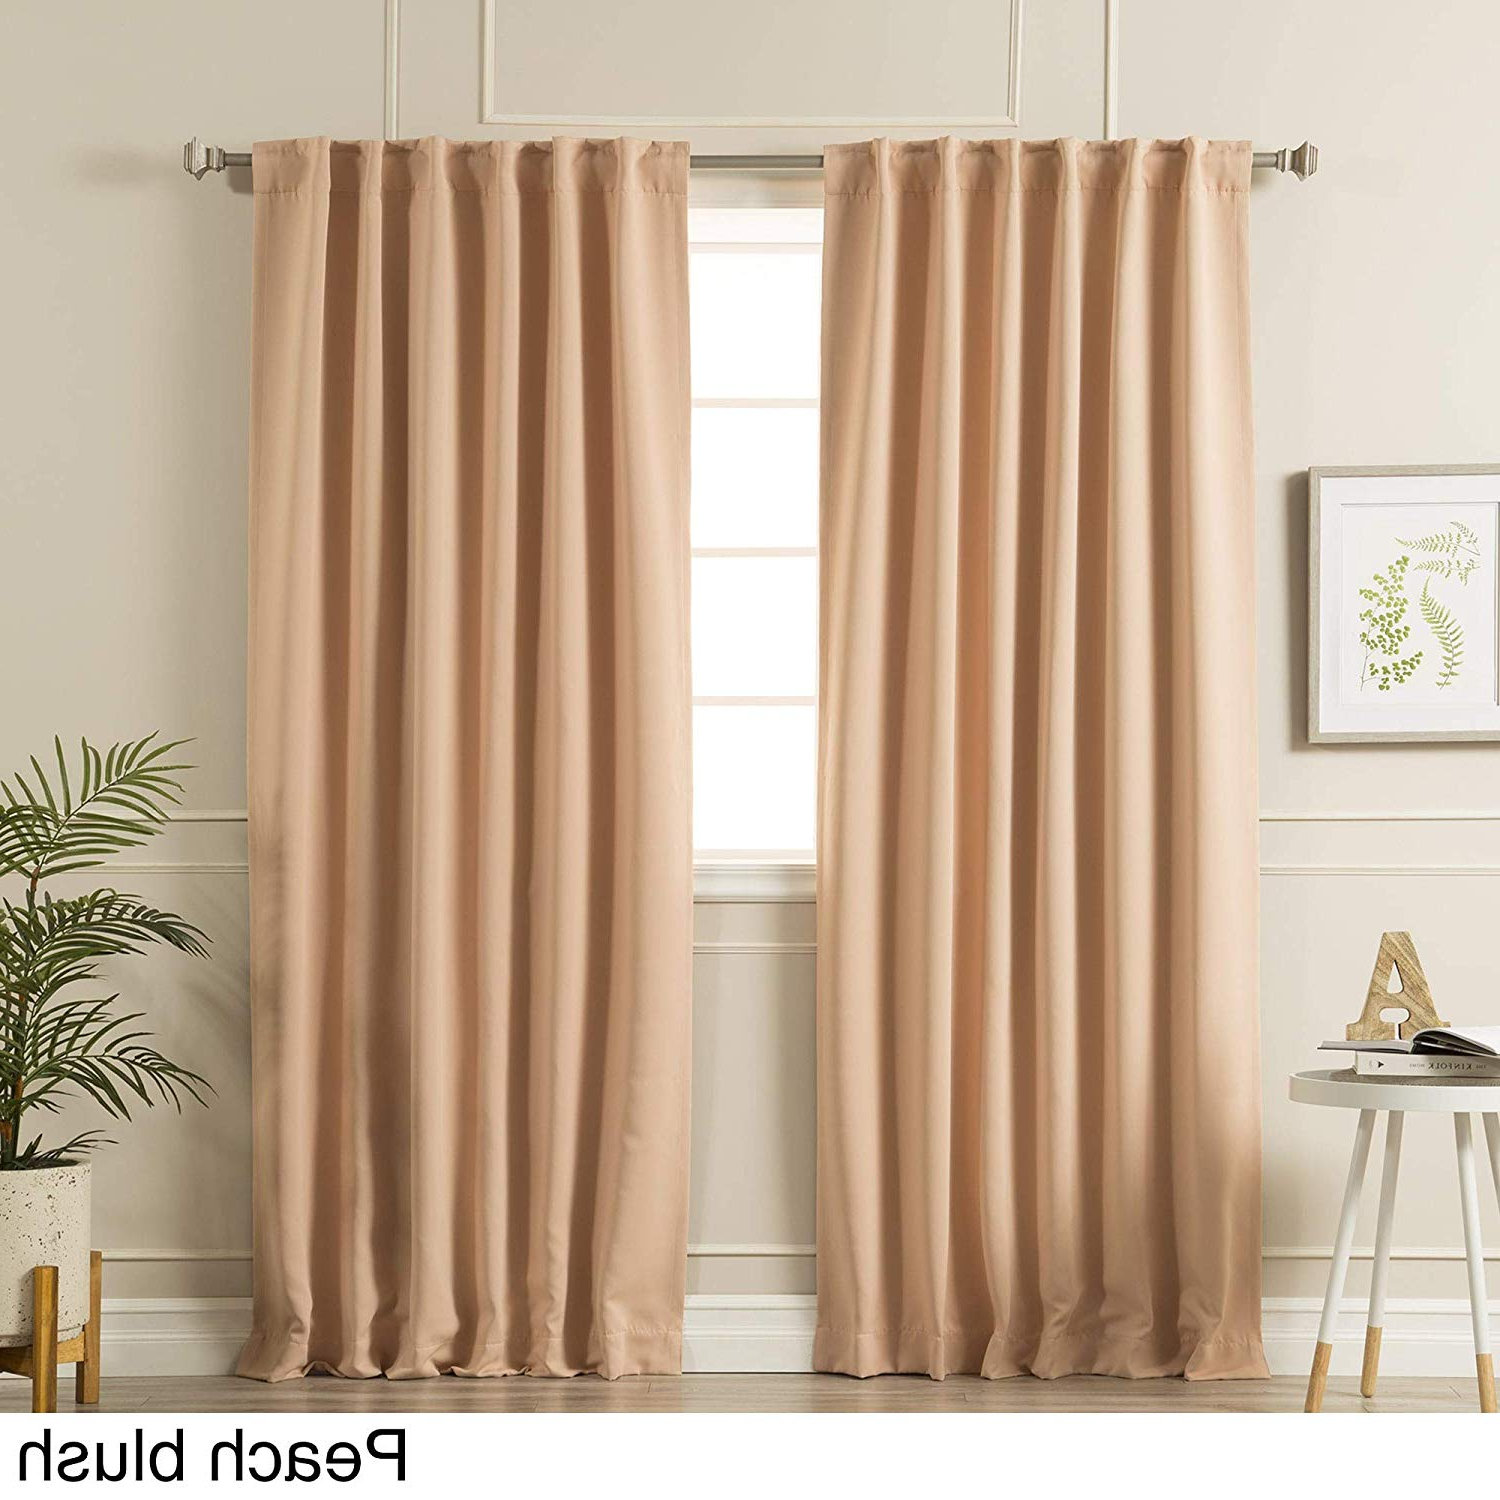 Preferred Solid Insulated Thermal Blackout Curtain Panel Pairs In Amazon: Aurora Home Solid Insulated Thermal Blackout (View 8 of 20)